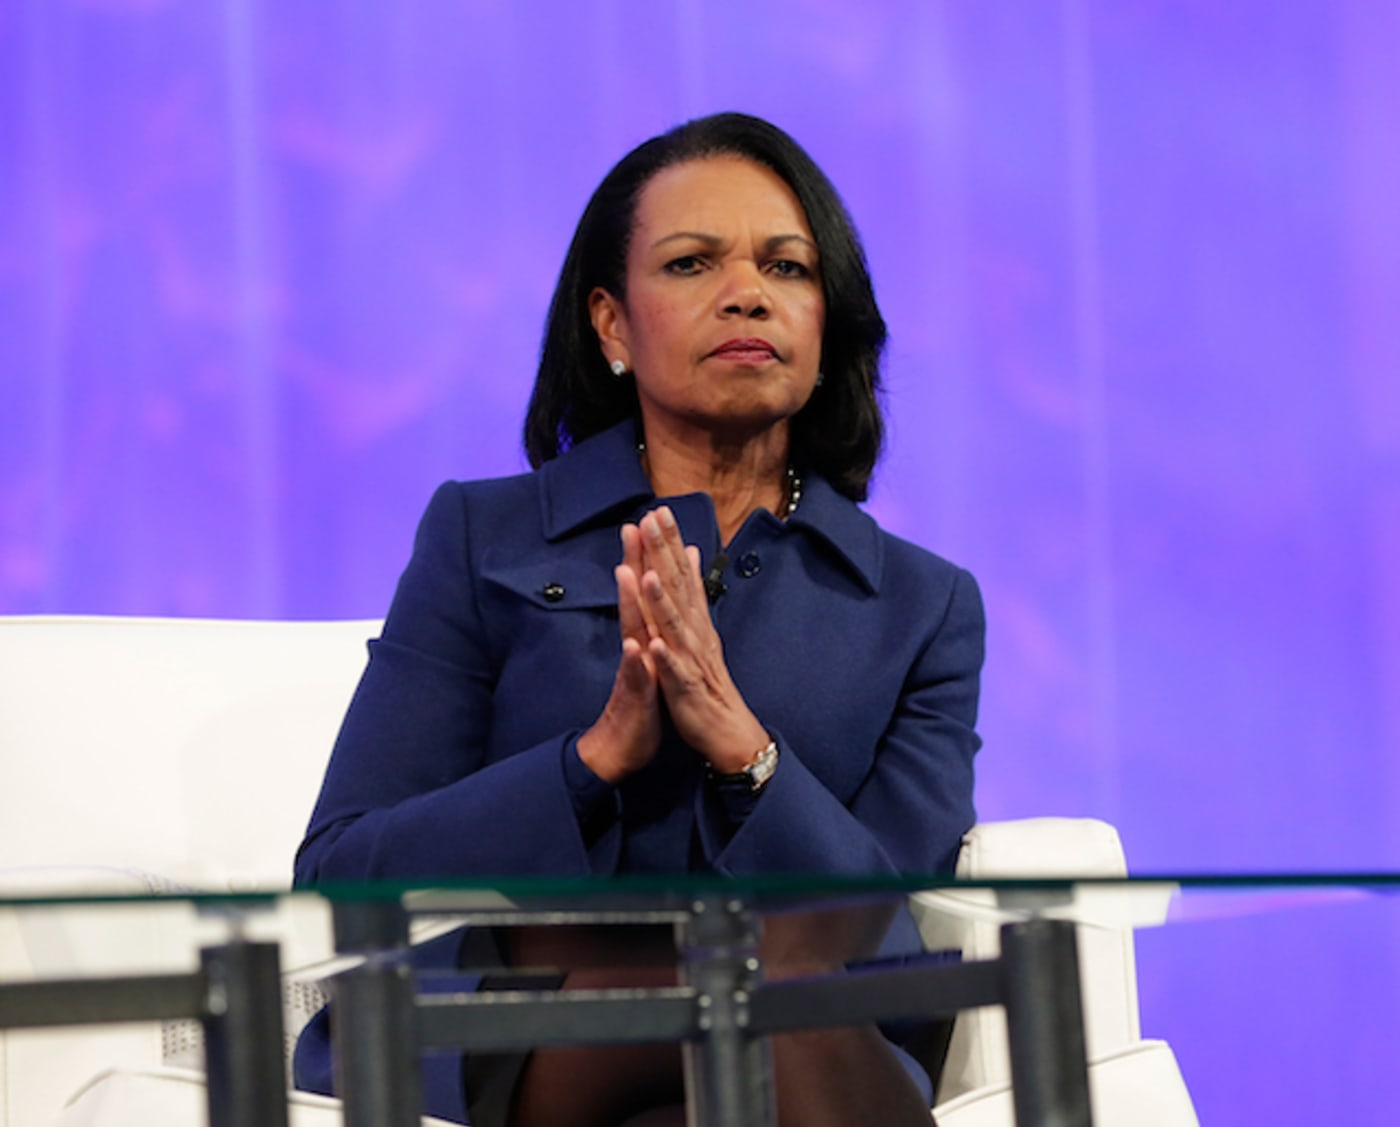 This is a picture of Condoleezza Rice.